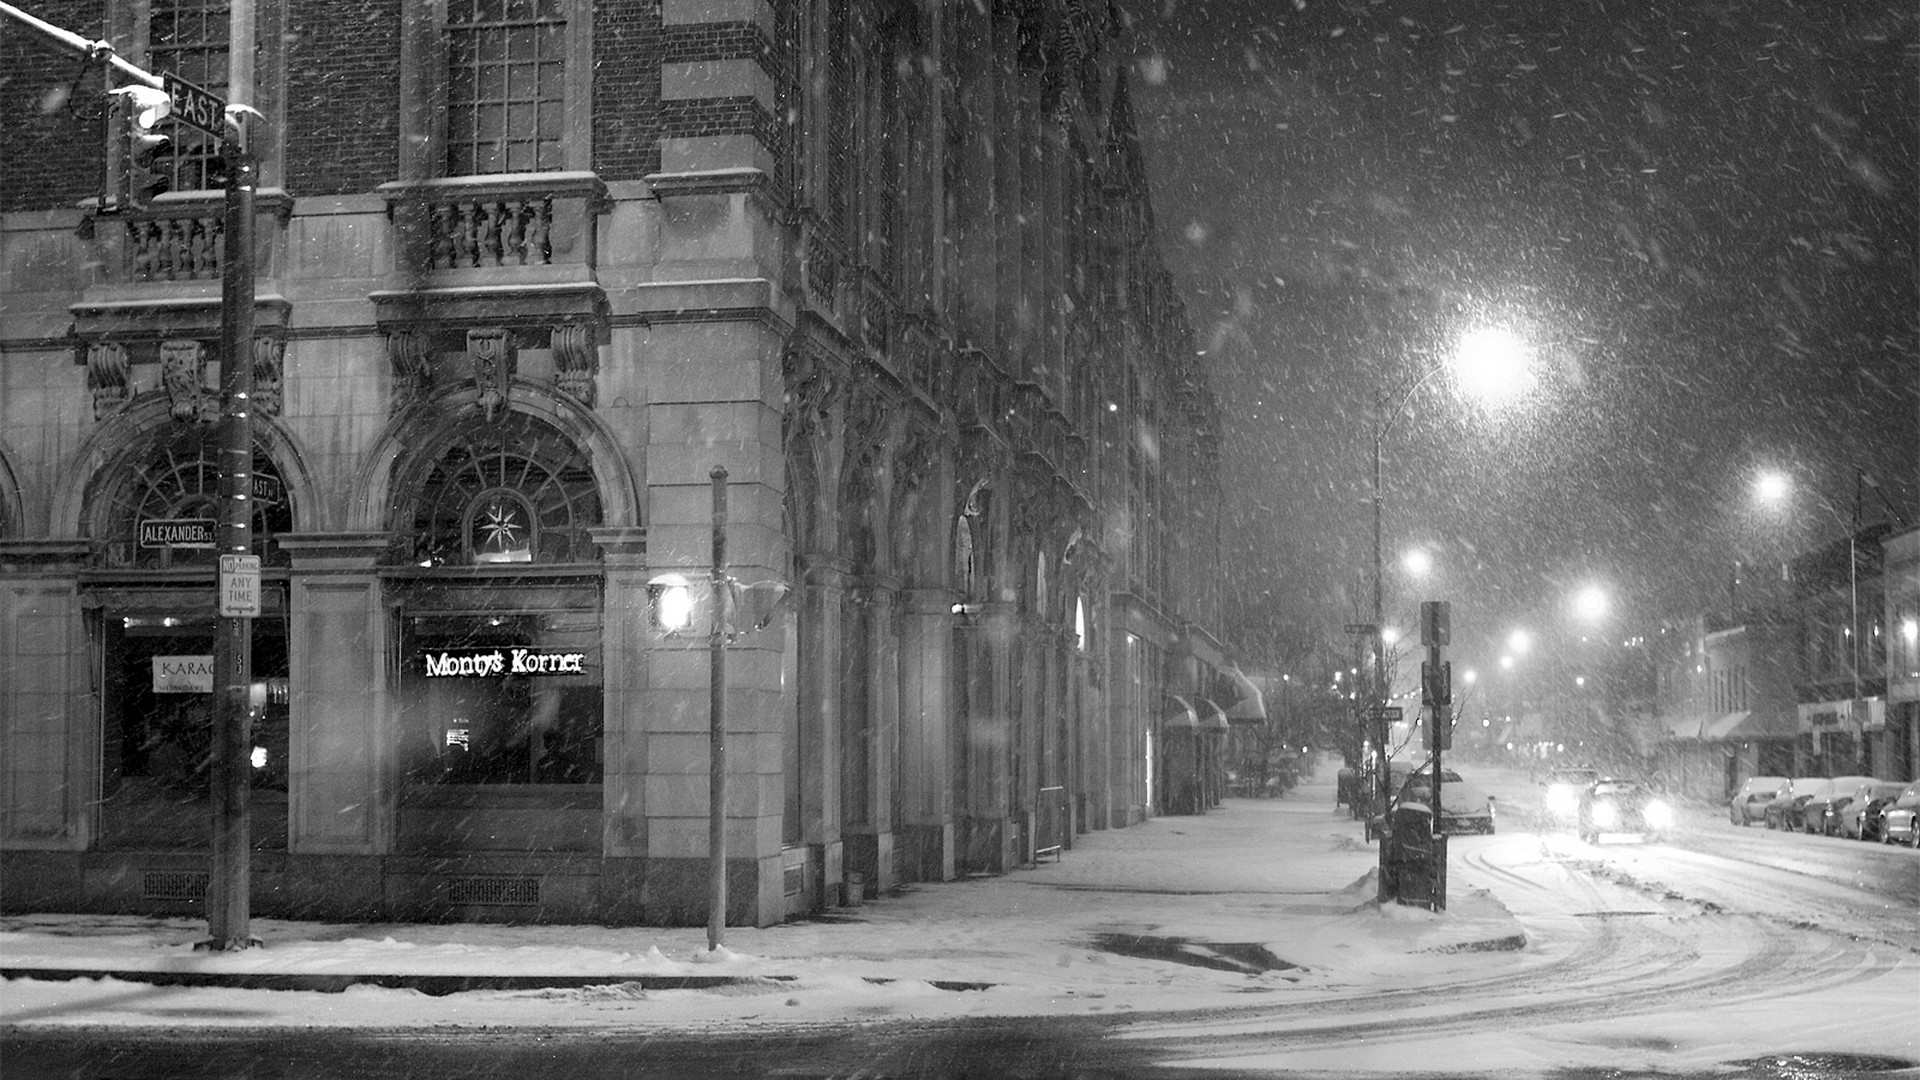 City-Street-Snow-Winter-Lane-Black-White-1920x1080-Need-iPhone-S-Plus-Background-wallpaper-wpc5803508